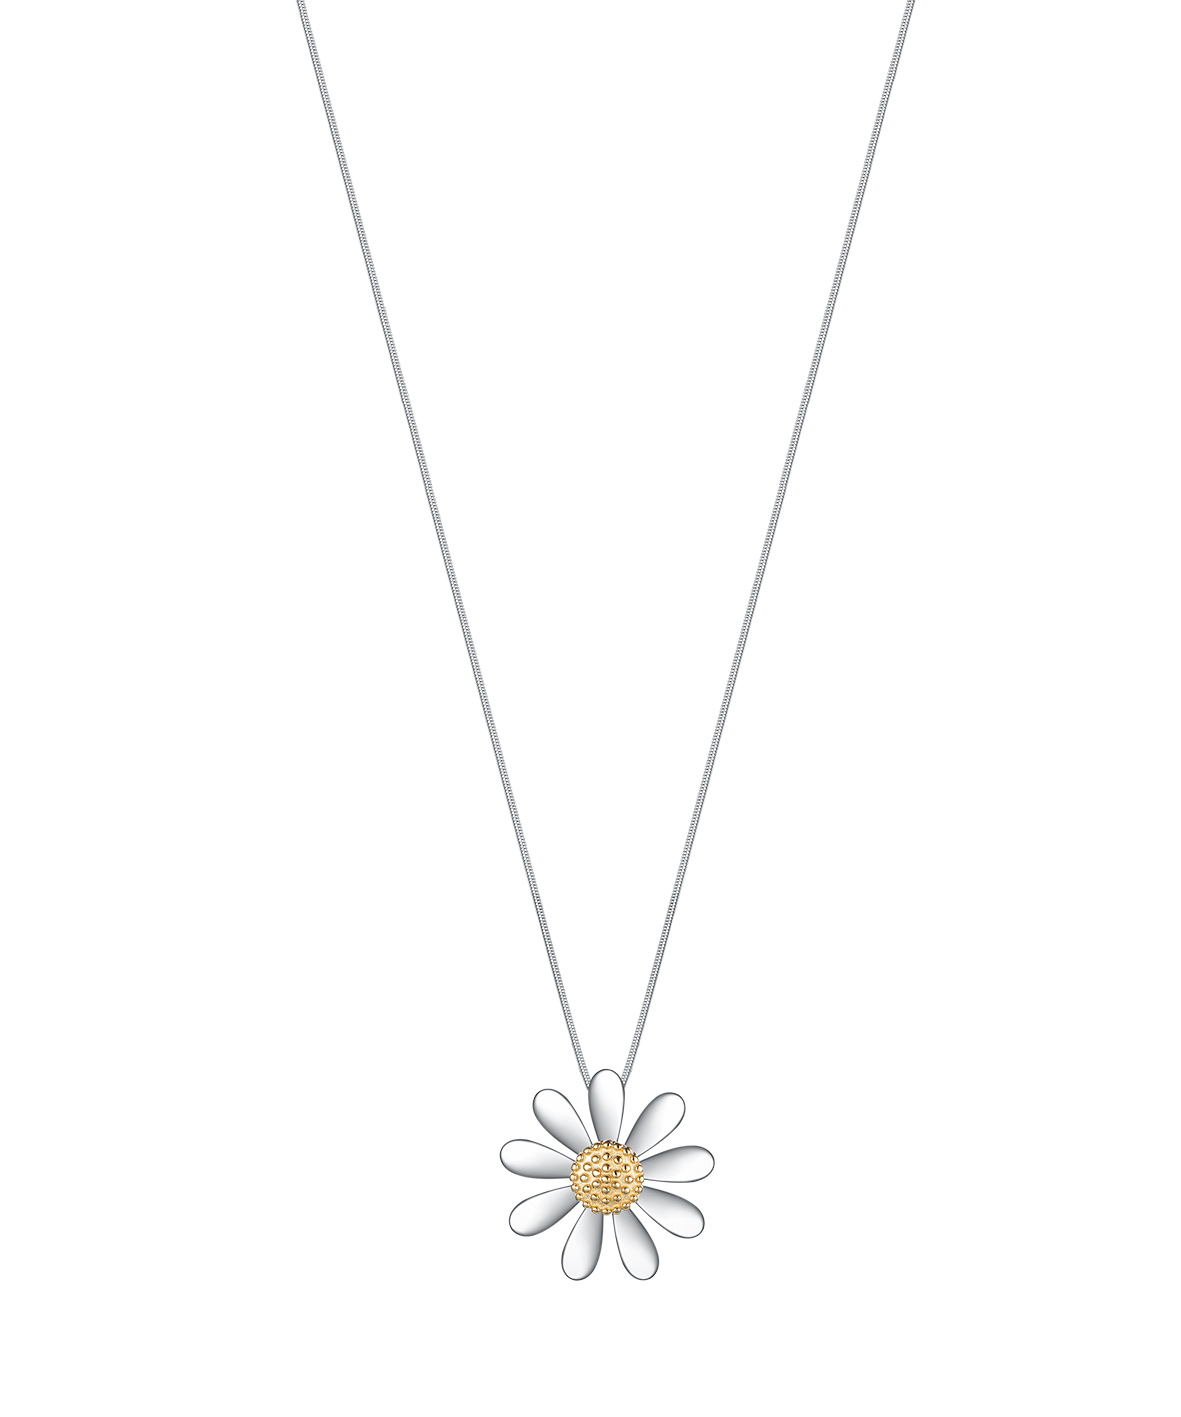 12mm Daisy Necklace